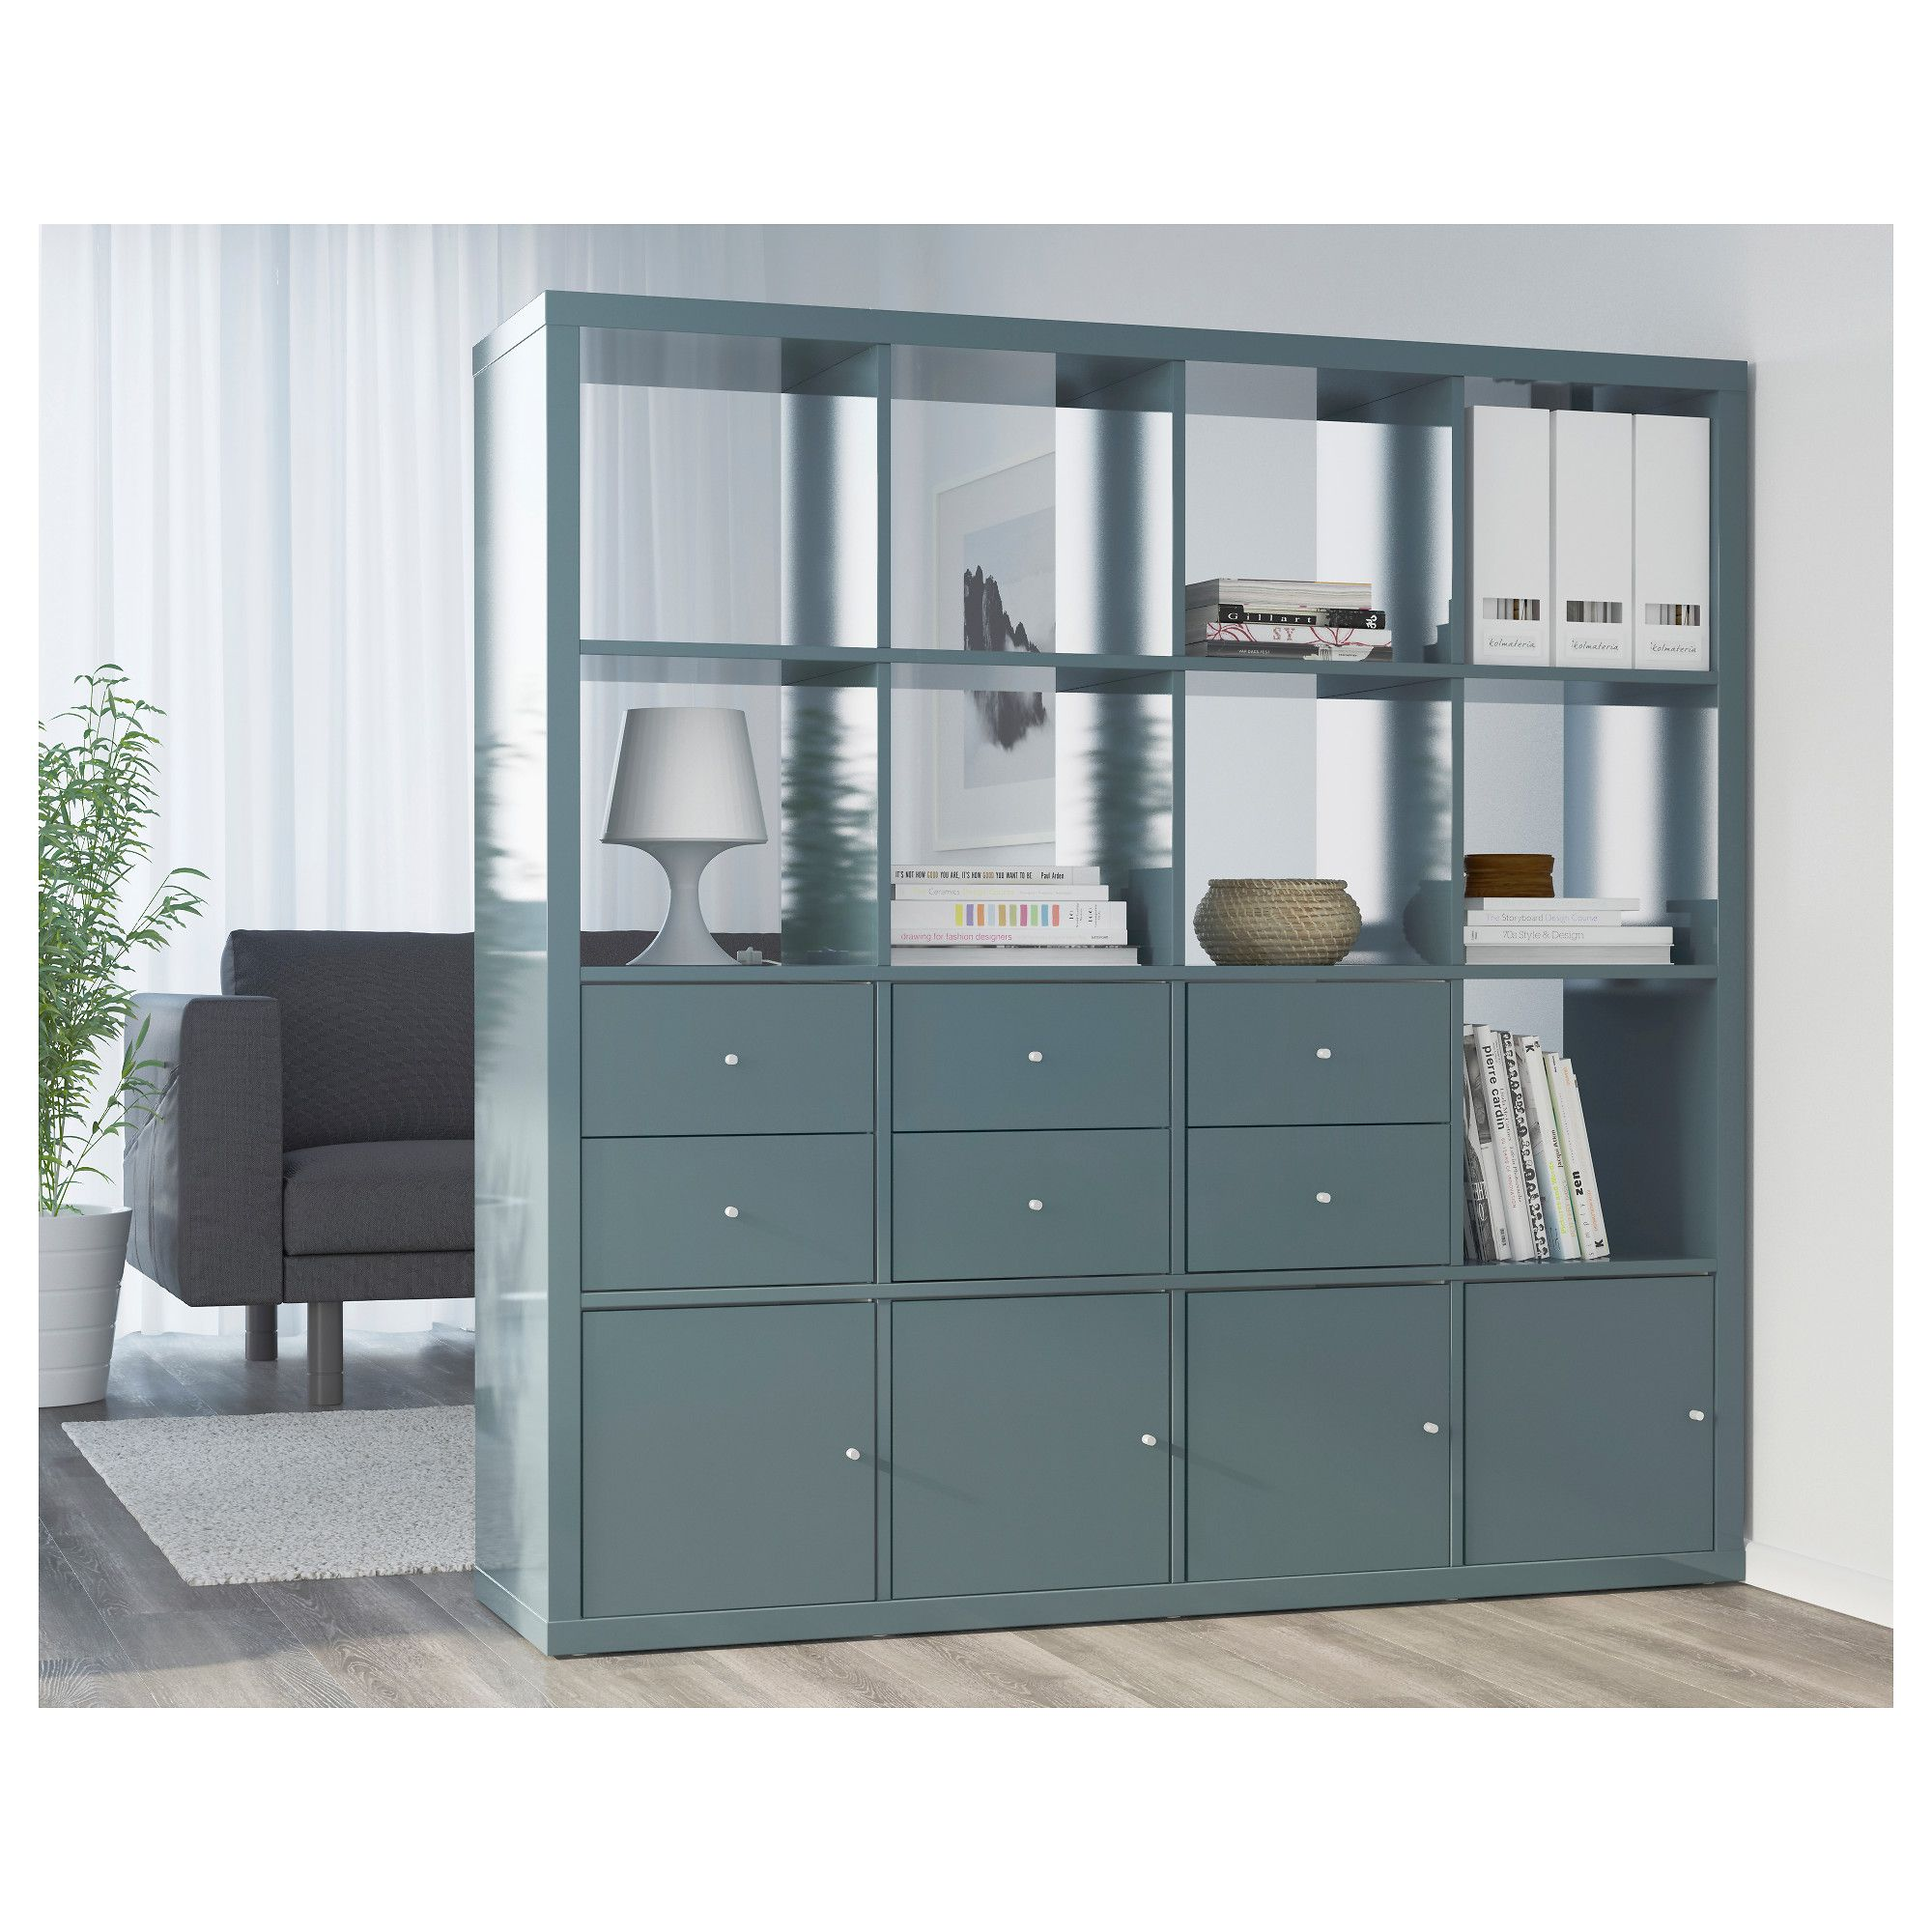 Kallax Shelving Unit High Gloss Grey Turquoise 147×147 Cm  # Customiser Tiroirs Et Portes Kallax